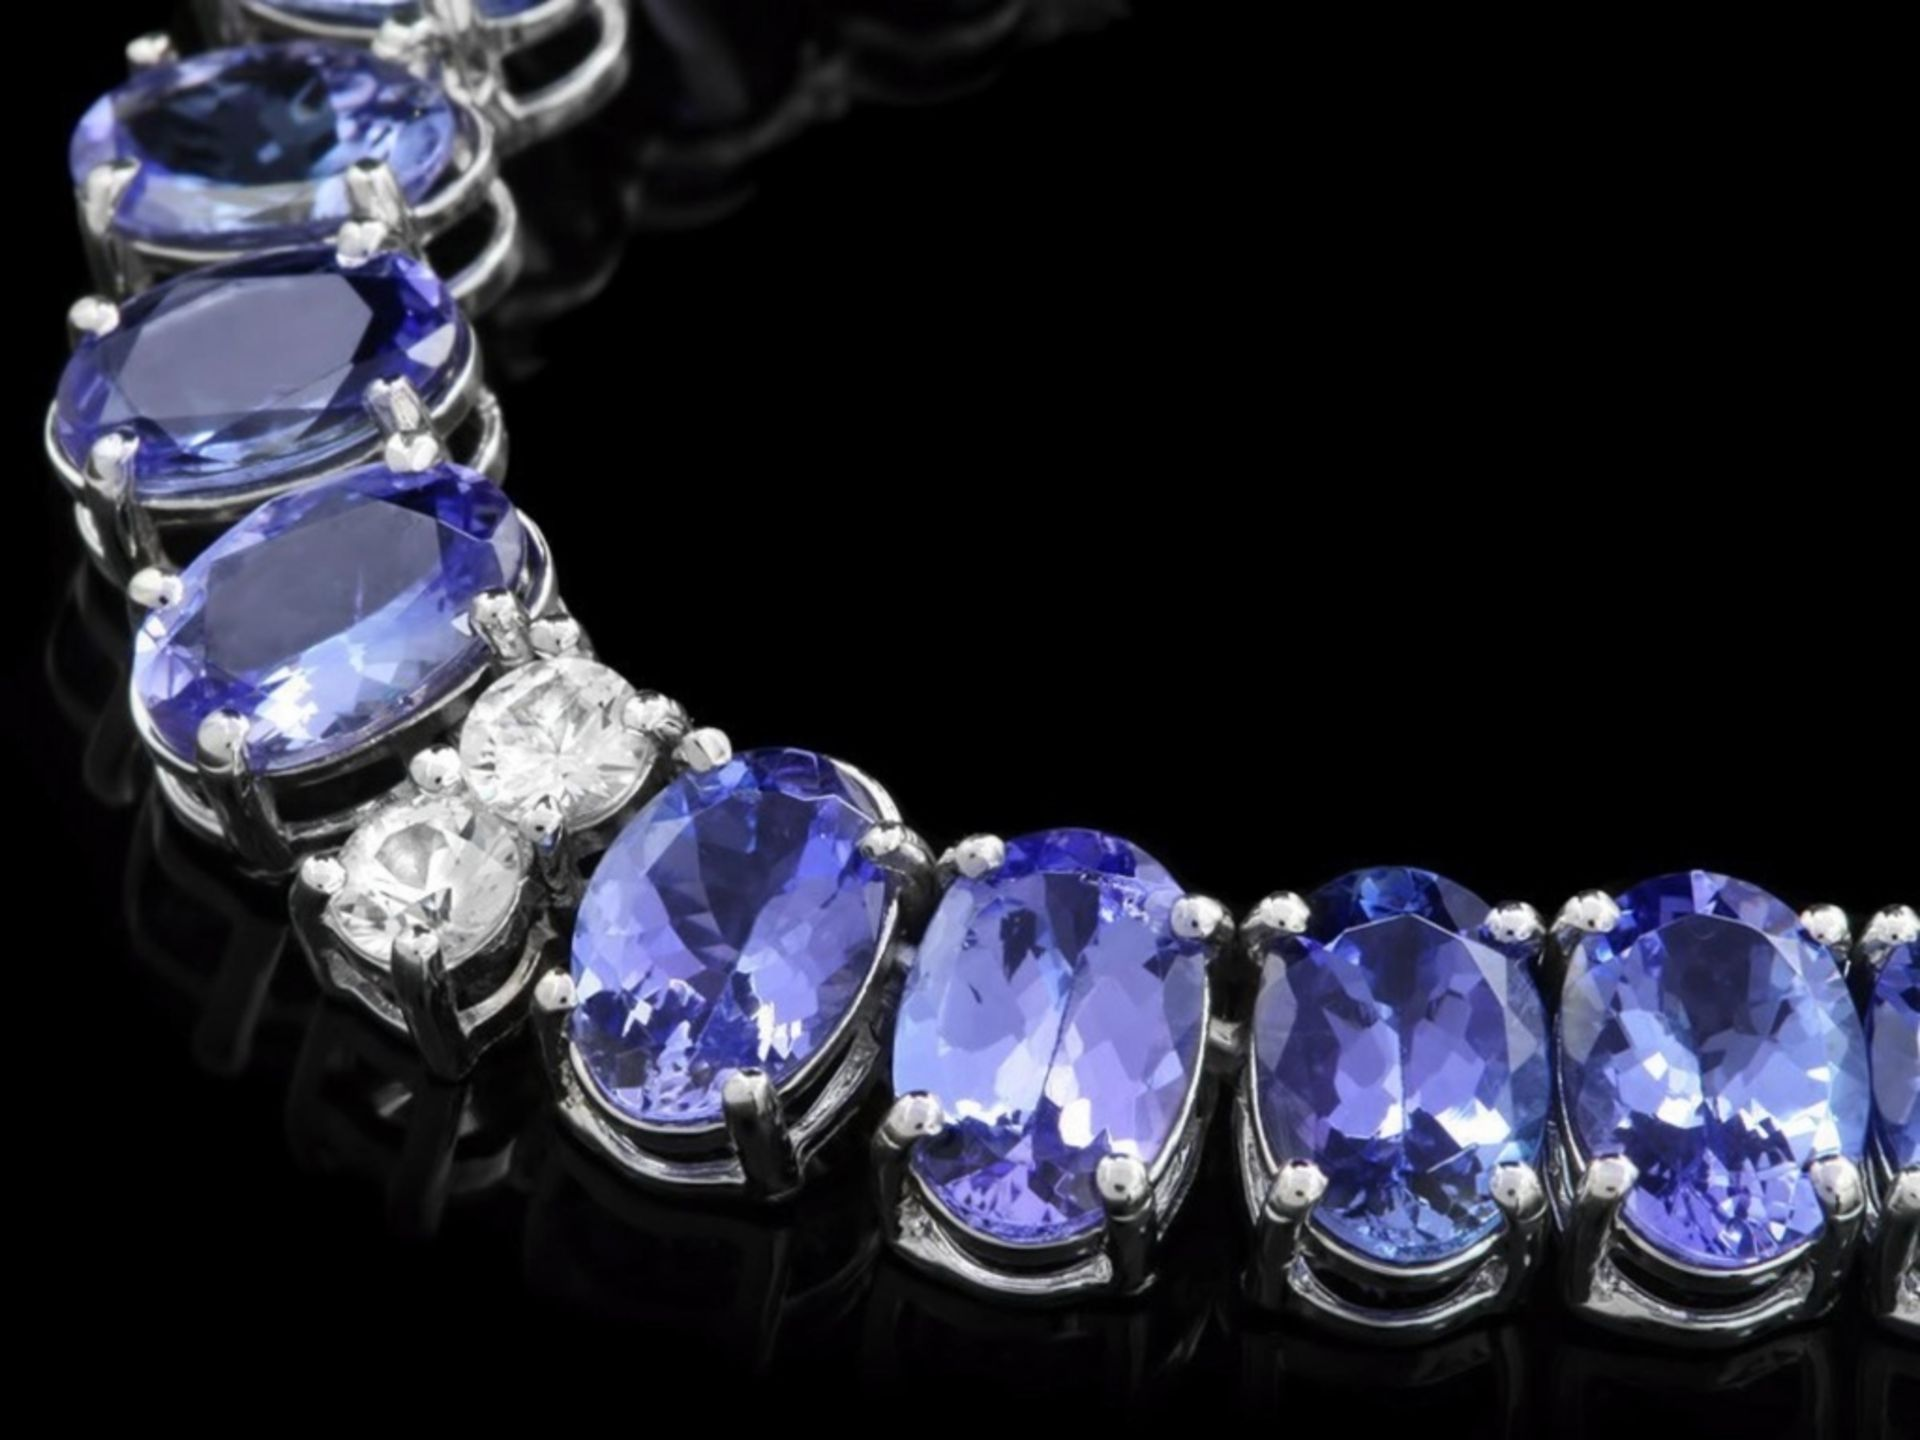 `14k Gold 55.00ct Tanzanite & 1.35ct Diamond Neckl - Image 4 of 5